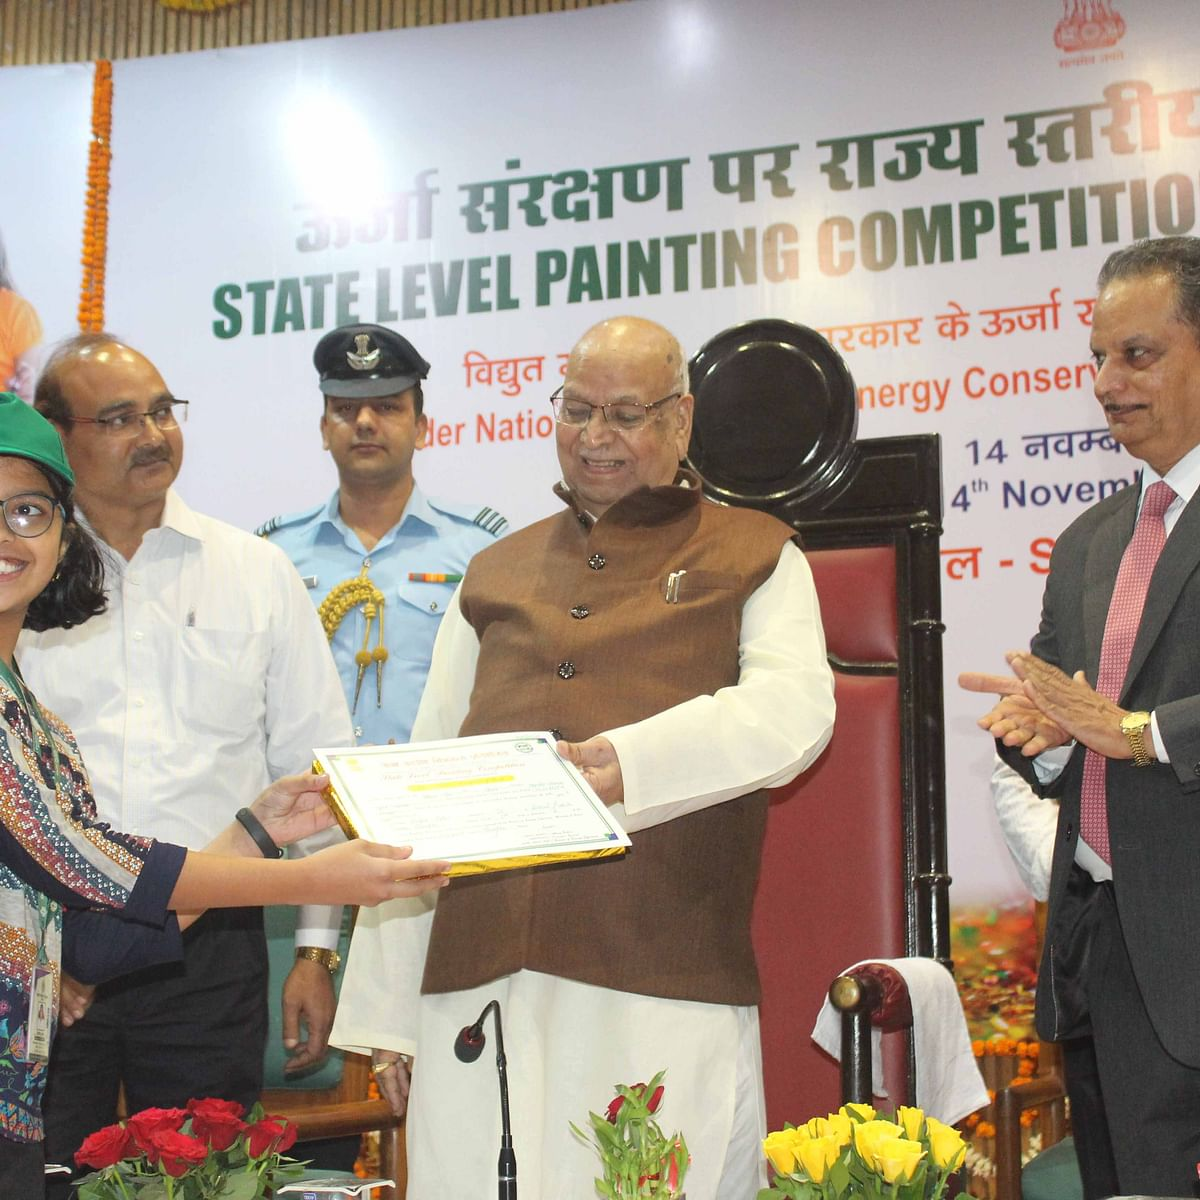 Bhopal: Students give colours to their ideas